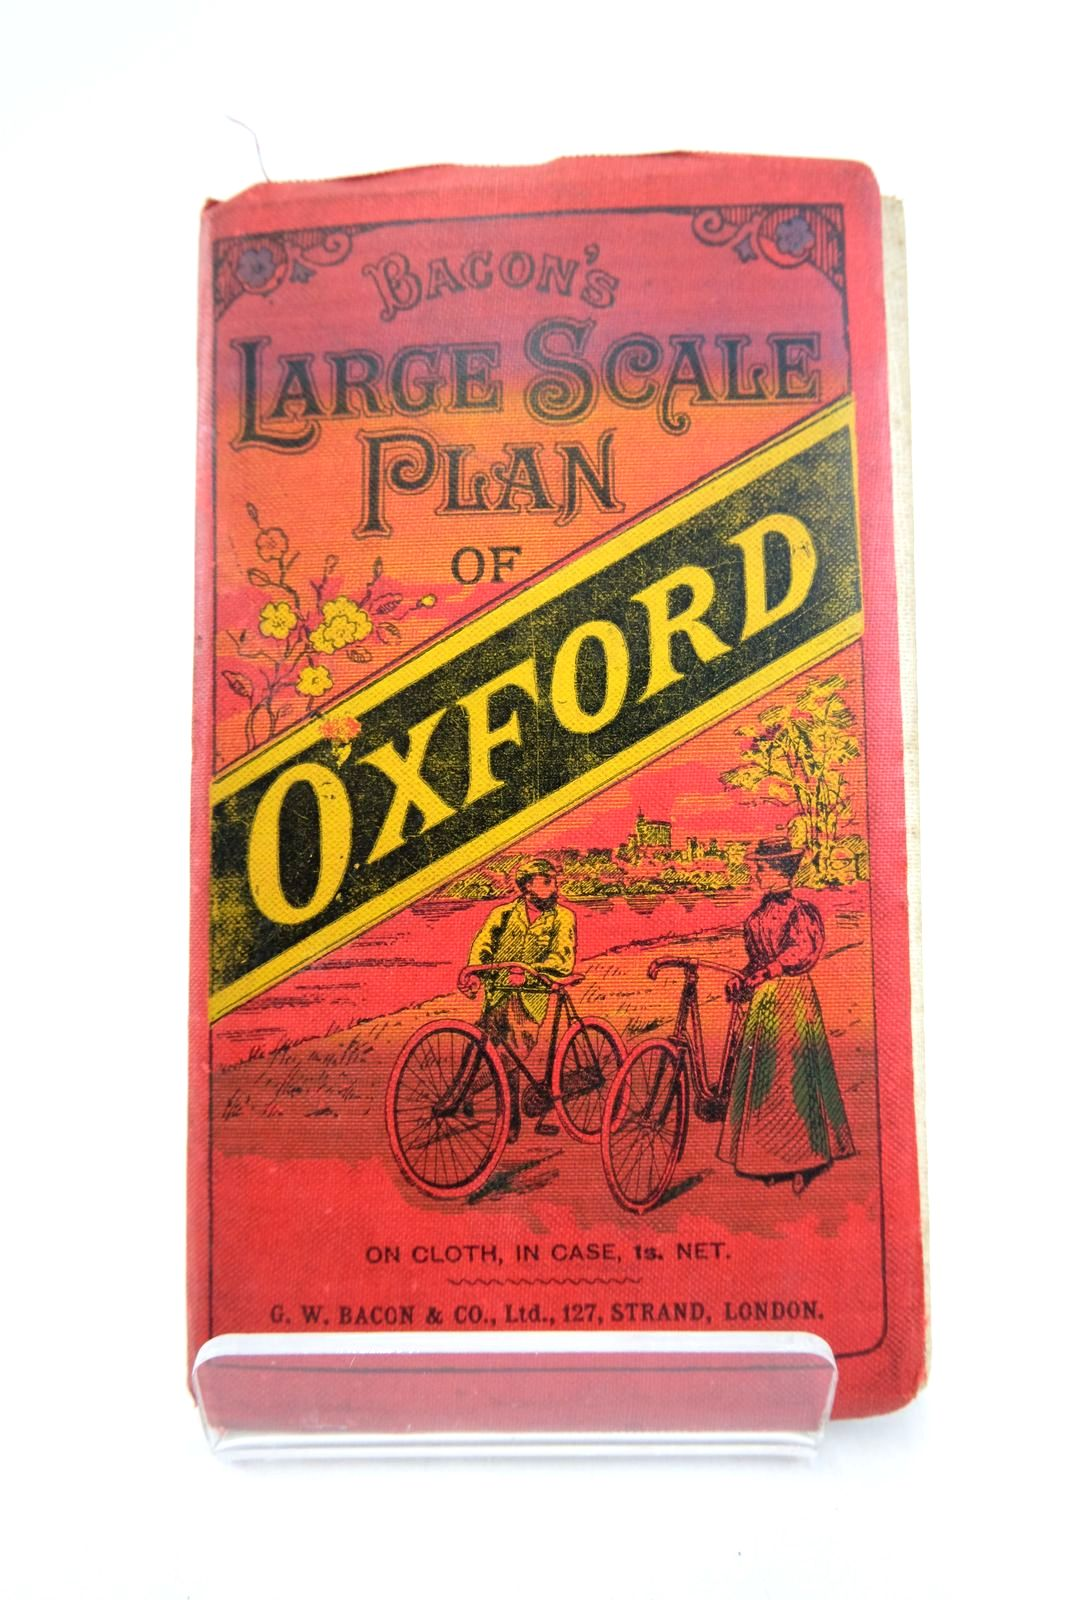 Photo of BACON'S LARGE SCALE PLAN OF OXFORD published by G.W. Bacon & Co. Ltd. (STOCK CODE: 2133283)  for sale by Stella & Rose's Books